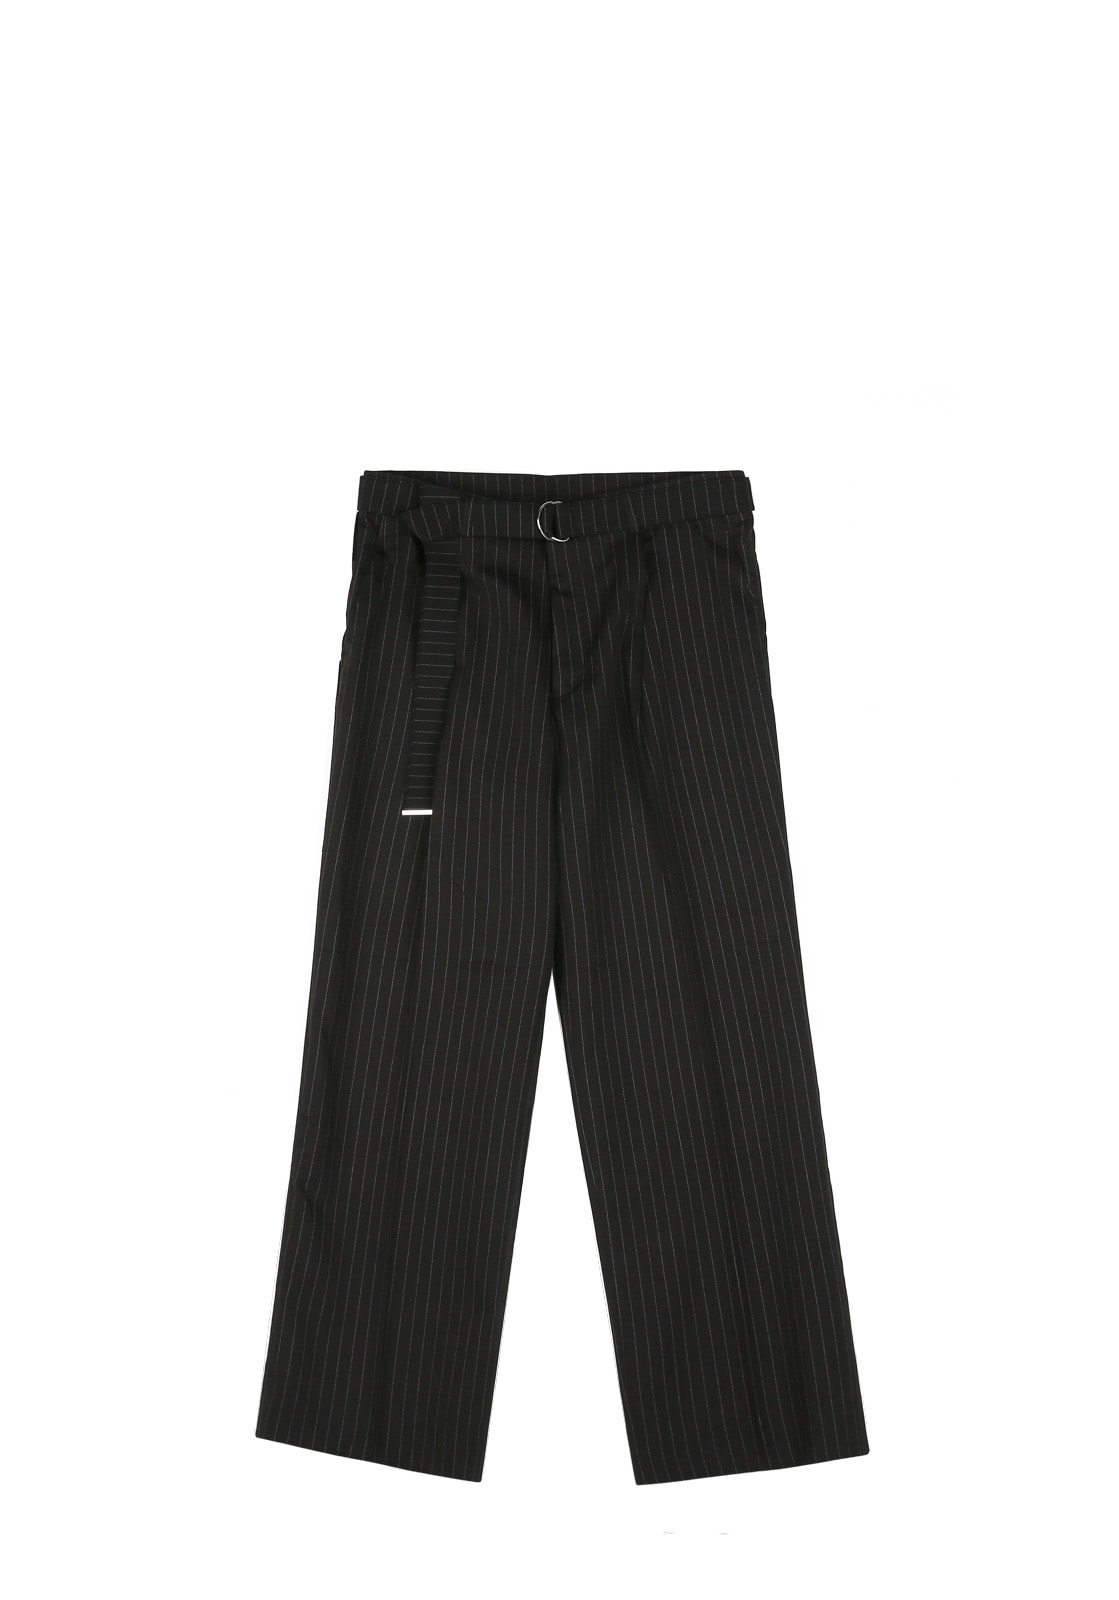 V252 STRIPE BELT WIDE SLACKS  BLACK